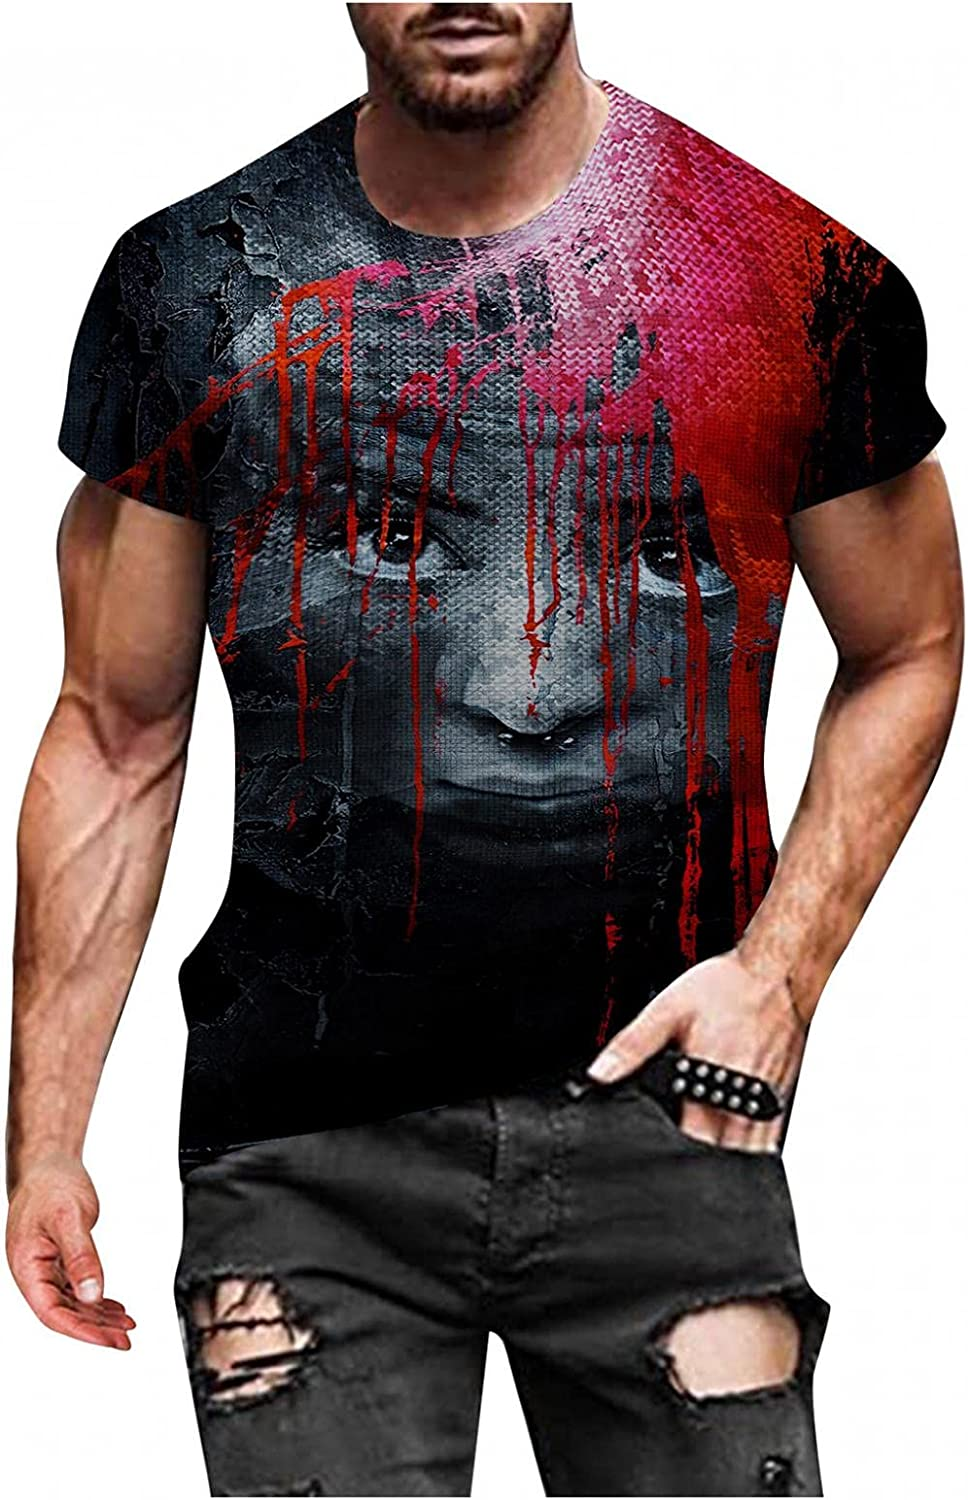 JSPOYOU Mens 3D Graphics Short Sleeve T-Shirts Halloween Funny Pumpkin Skull Printed Blouse Top Slim Fit Muscle Workout Tee